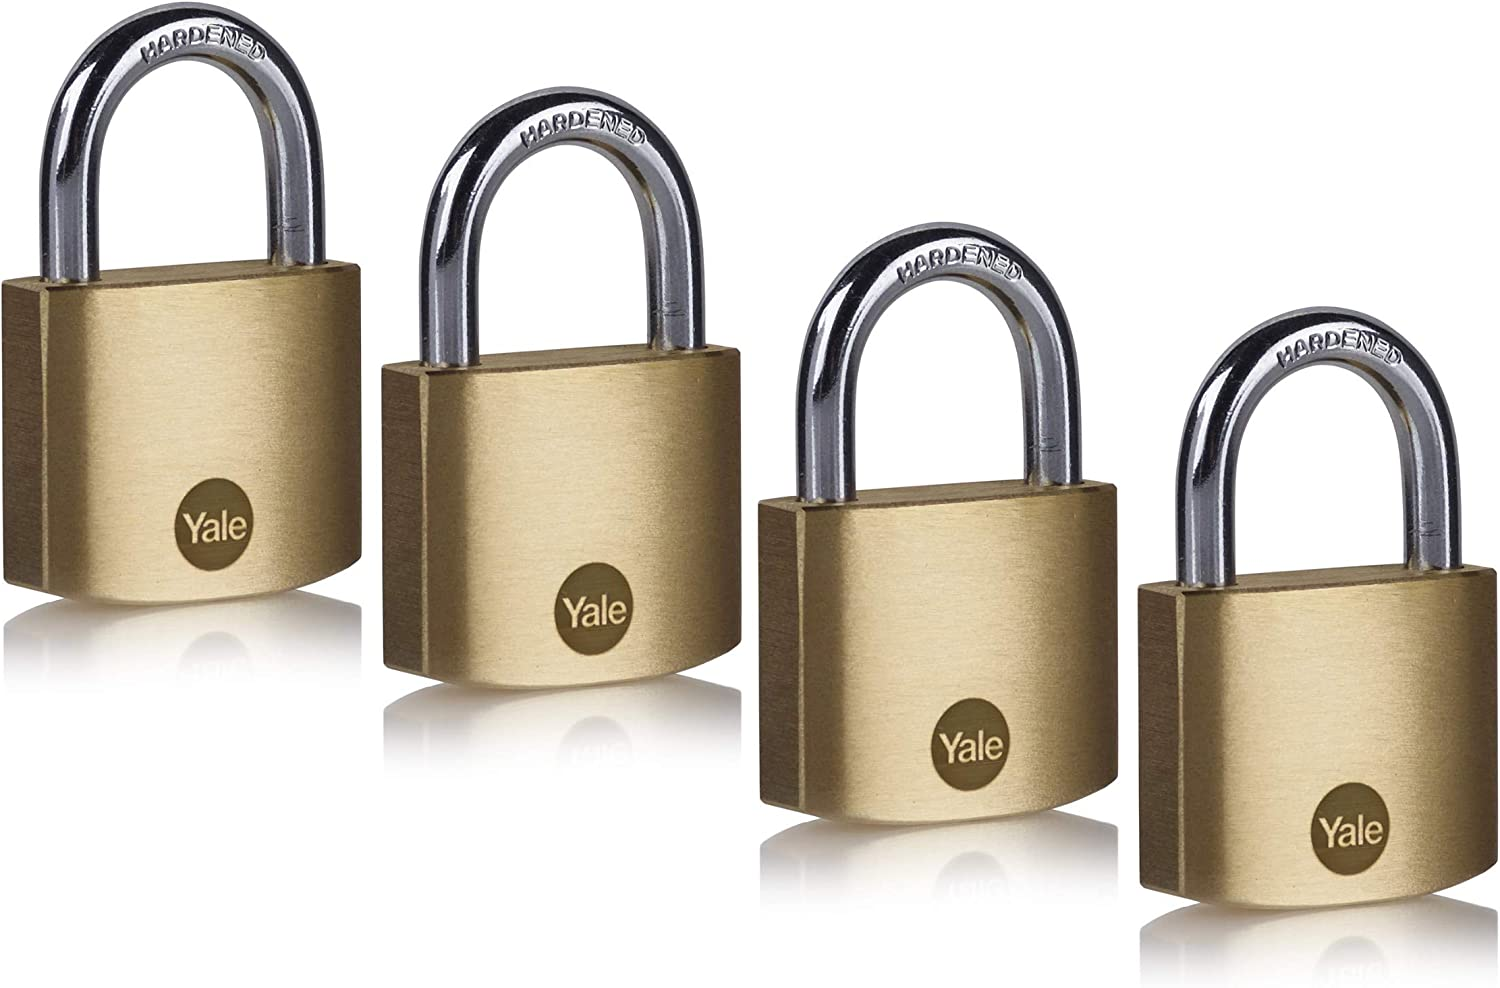 4 x YALE SECURITY PADLOCKS 40mm SOLID BRASS ALL PADLOCKS HAVE DIFFERENT KEYS